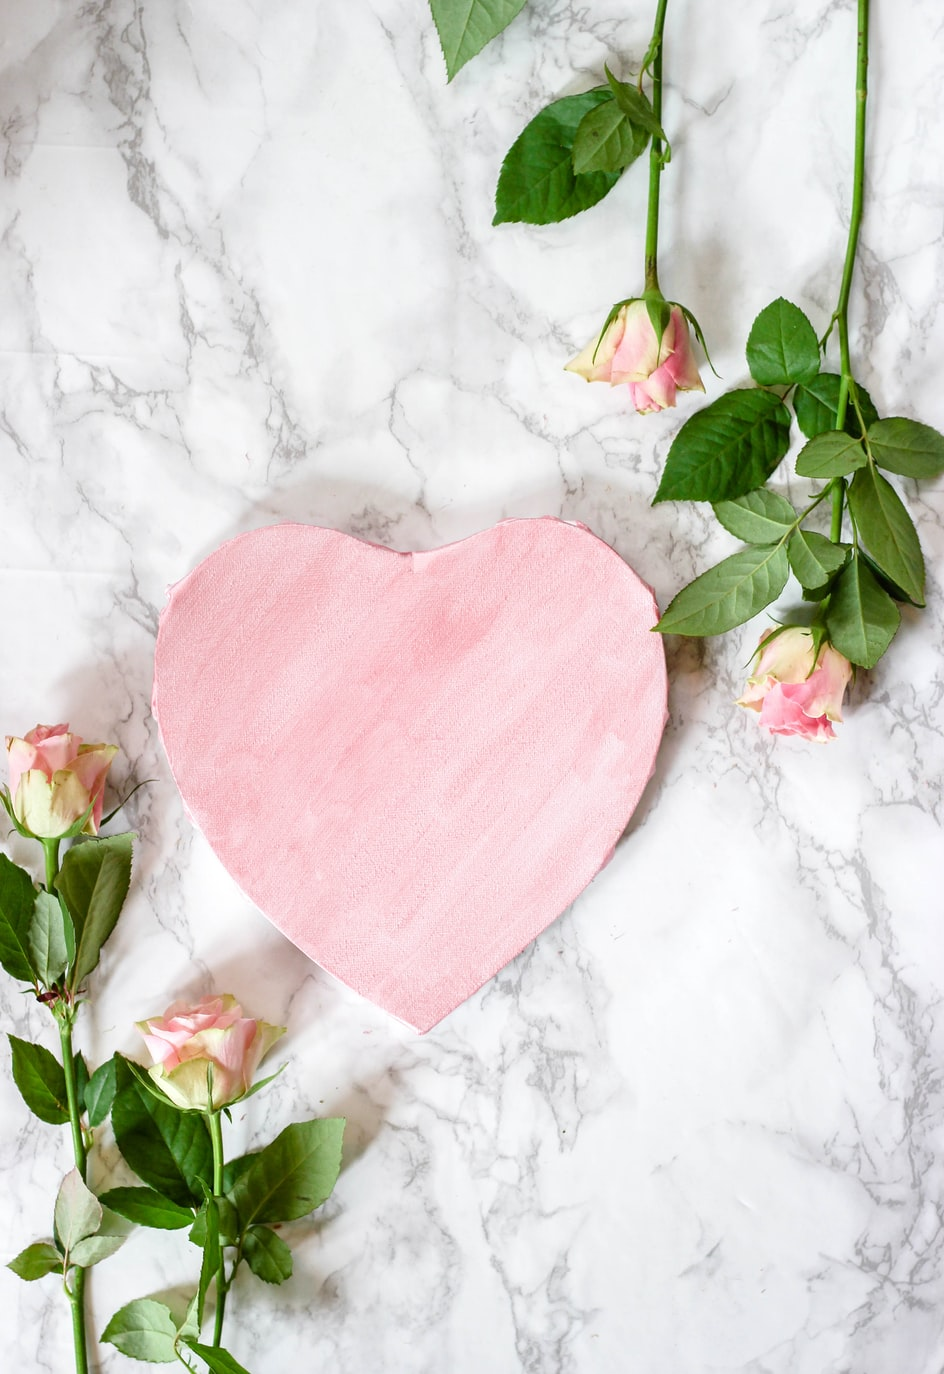 Stock image from unsplash of a pink heart on a marble background